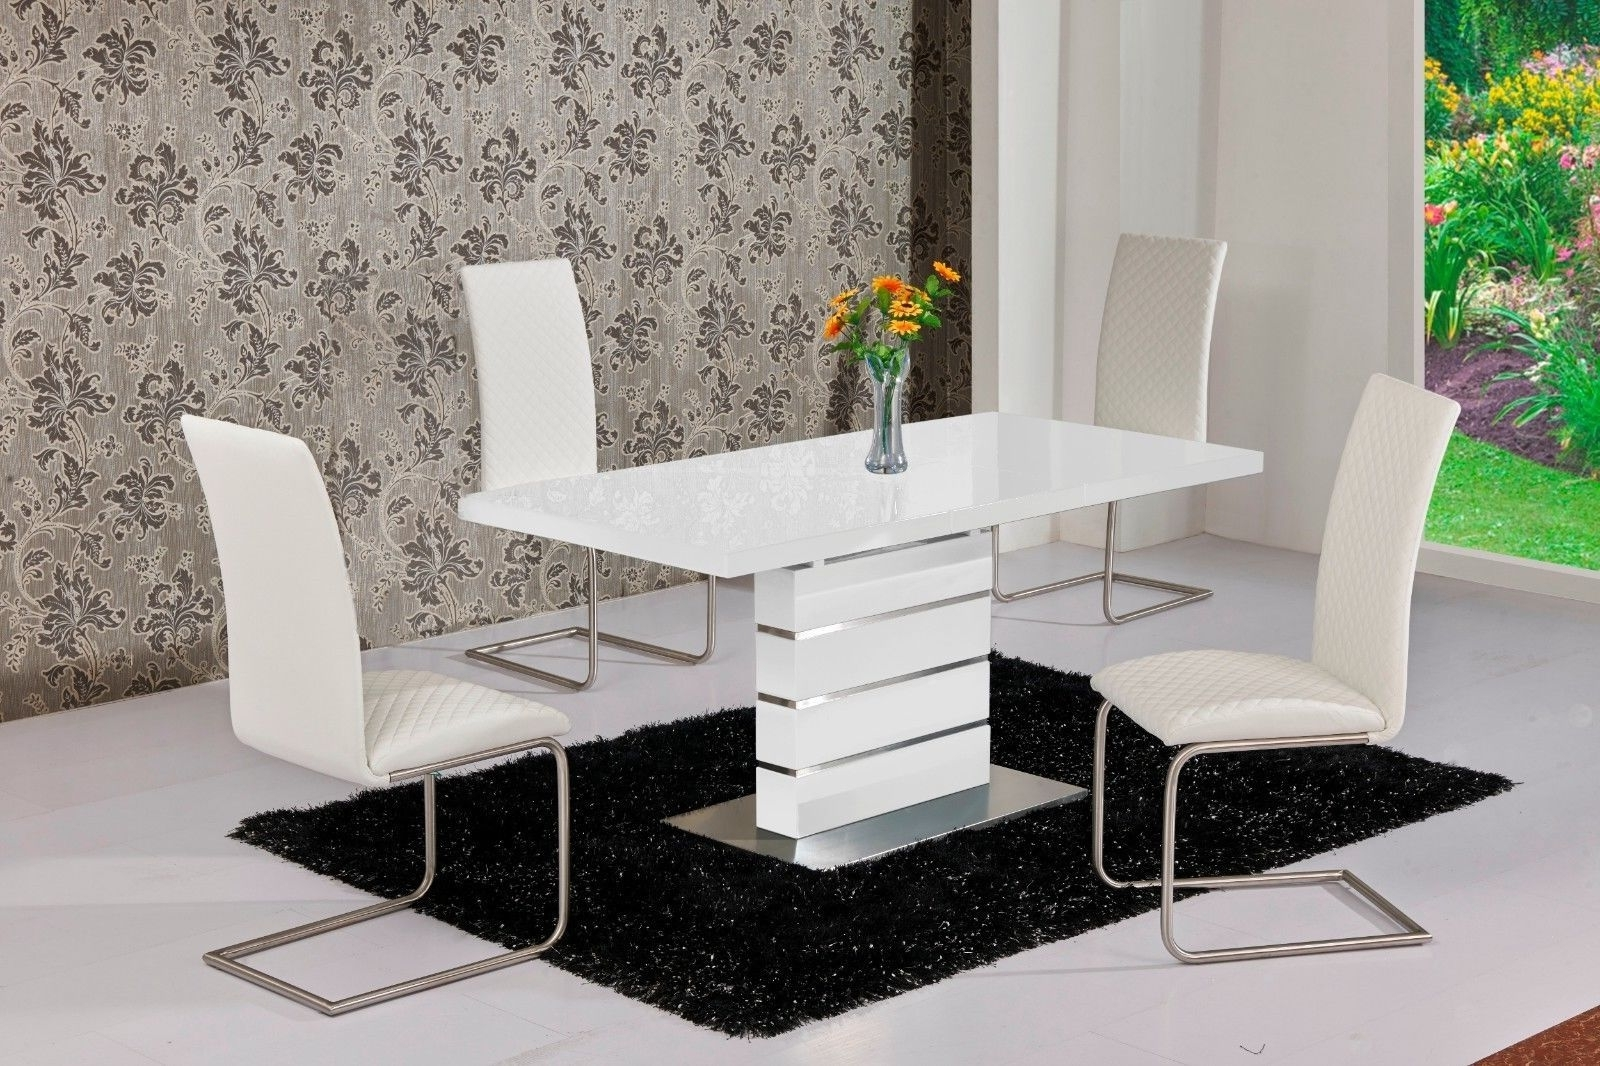 Mace High Gloss Extending 120 160 Dining Table & Chair Set – White Throughout Recent Black Gloss Extending Dining Tables (View 14 of 25)